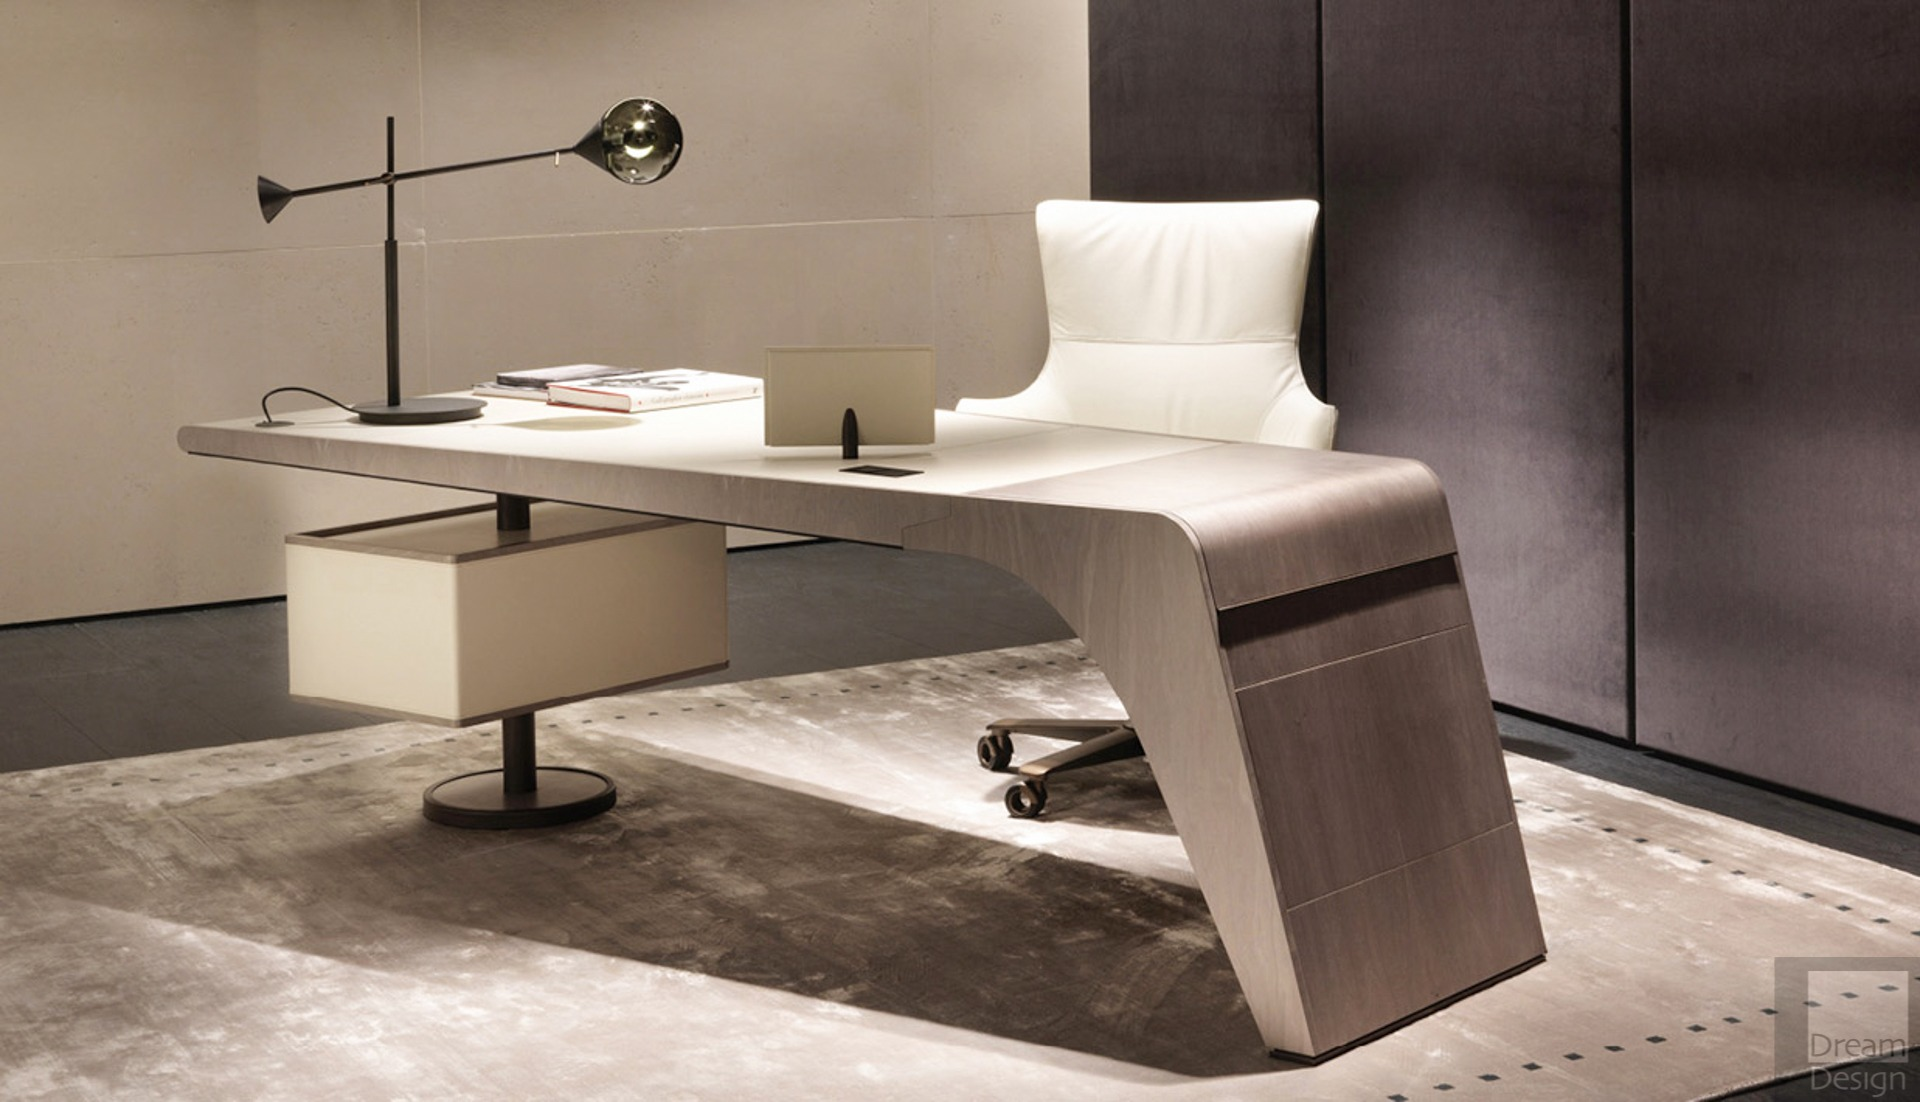 Giorgetti Tenet Desk Dream Design Interiors Ltd